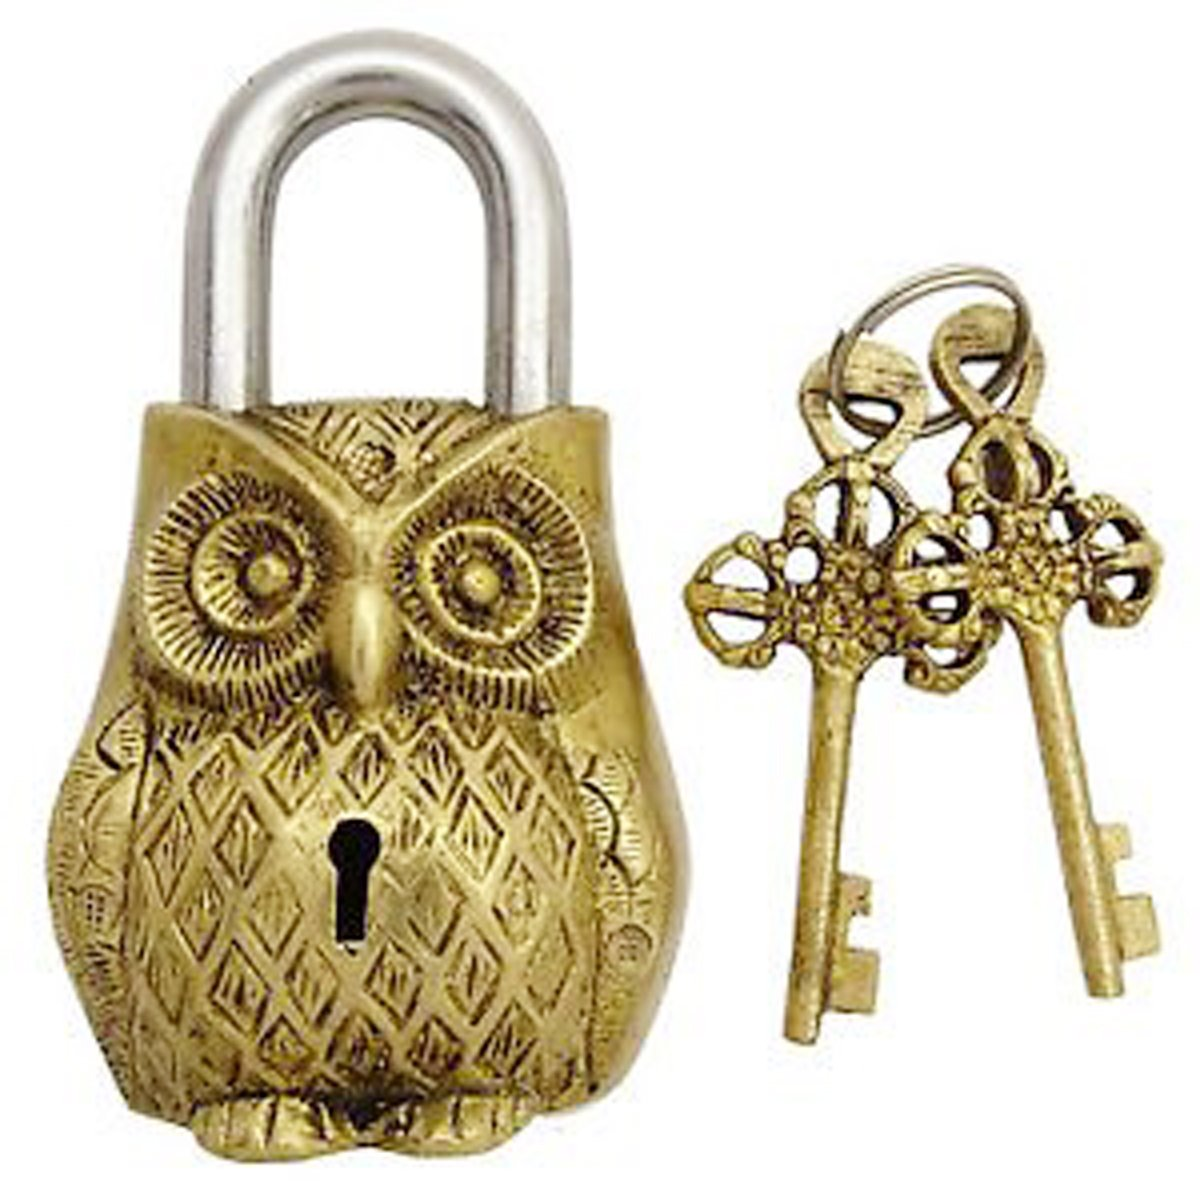 PARIJAT HANDICRAFT Functional Brass Beautiful Padlocks with Two Keys Owl Shaped Brass Handcrafted Locks for Security